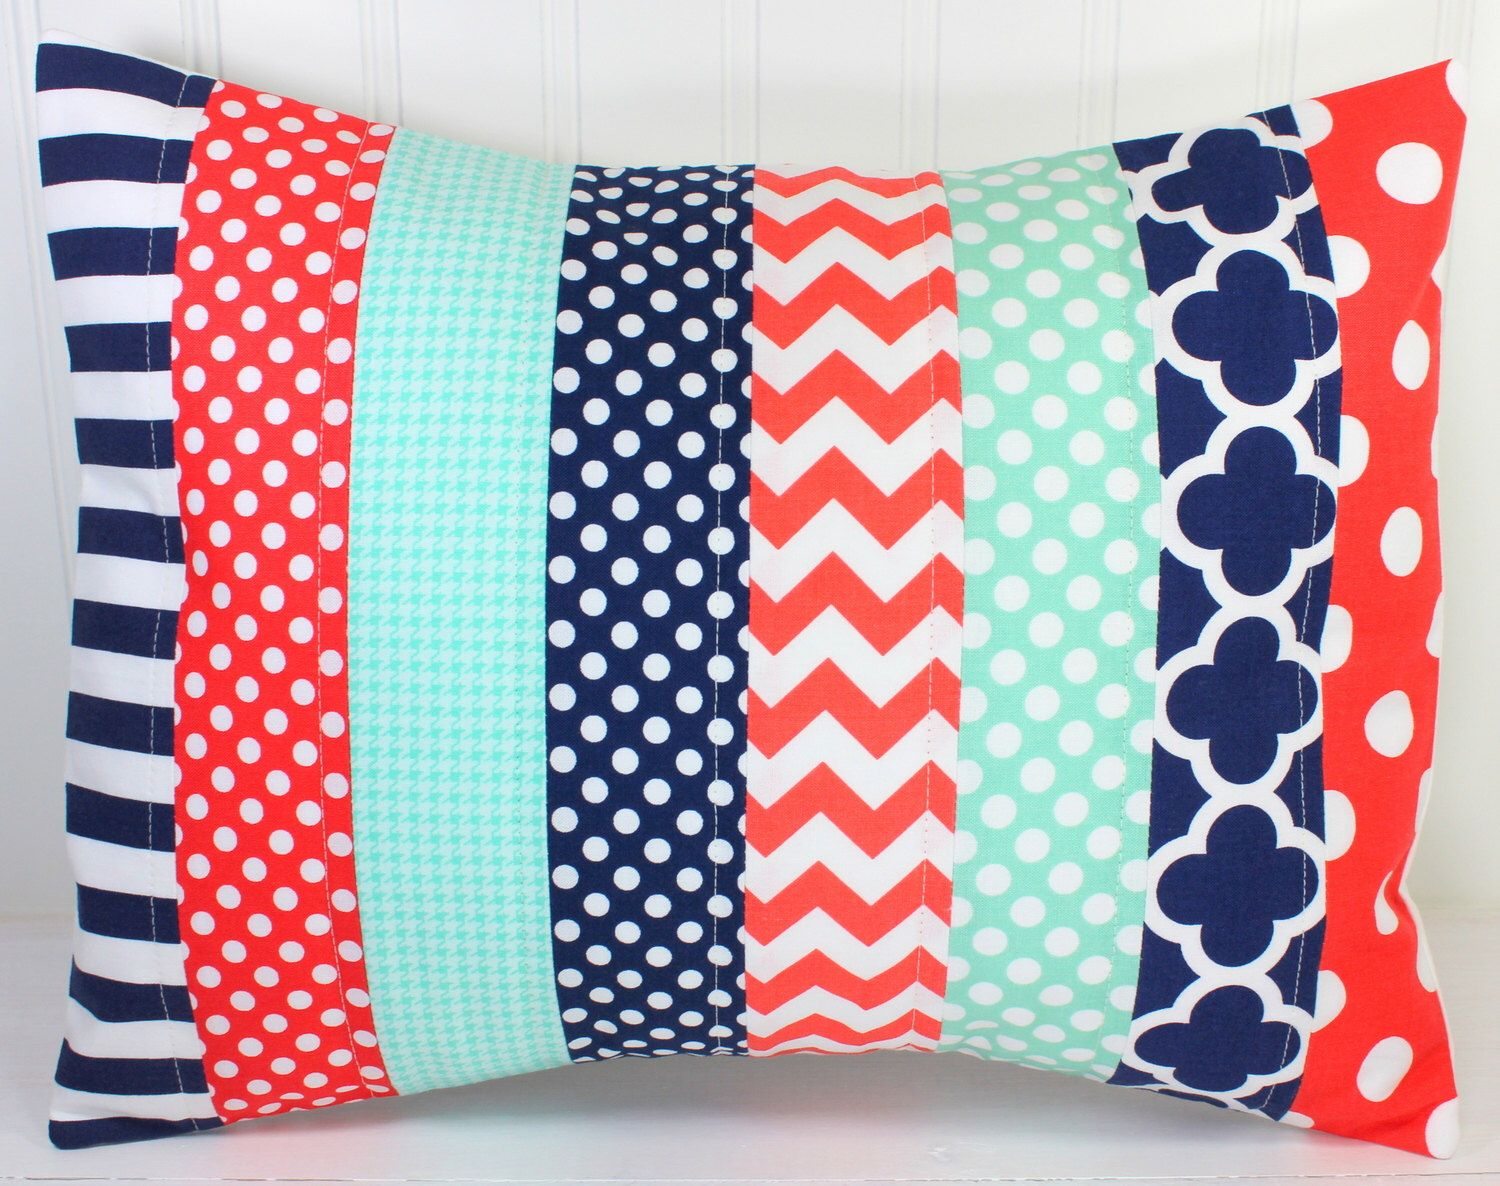 Pillow Cover, Unisex Nursery Decor, Patchwork Pillow Cover, Crib Bedding, 12 x 16 Inches, Navy Blue, Tiffany Blue, Mint Green, Coral by theredpistachio on Etsy https://www.etsy.com/listing/192404701/pillow-cover-unisex-nursery-decor